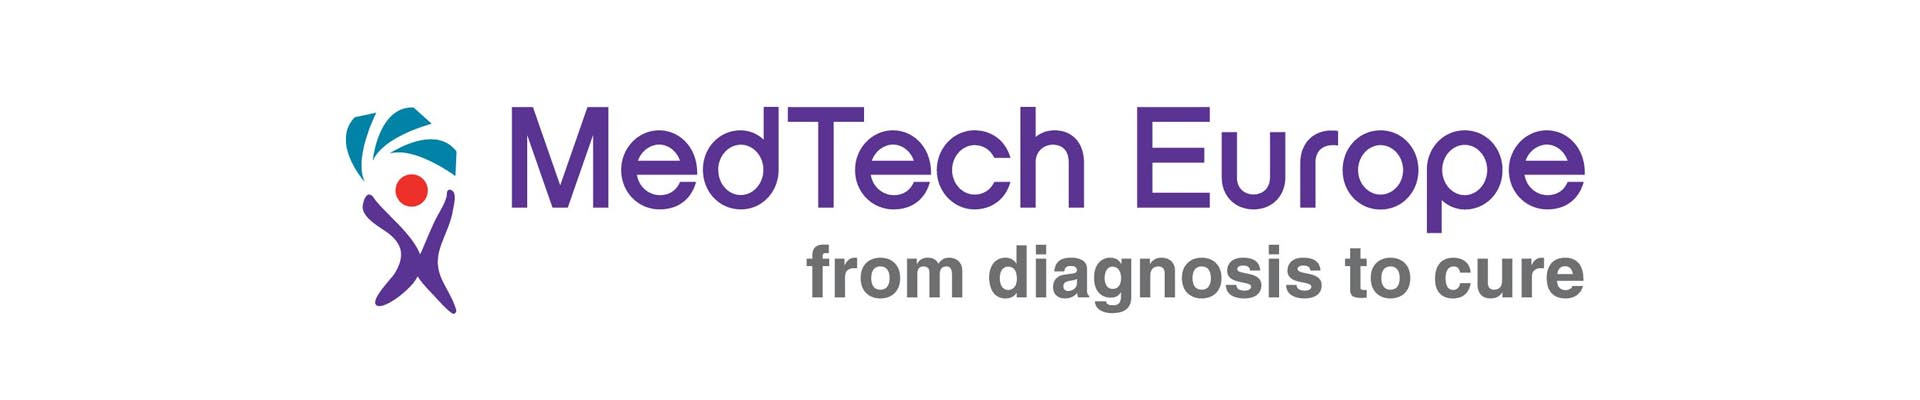 MedTech Europe Articles